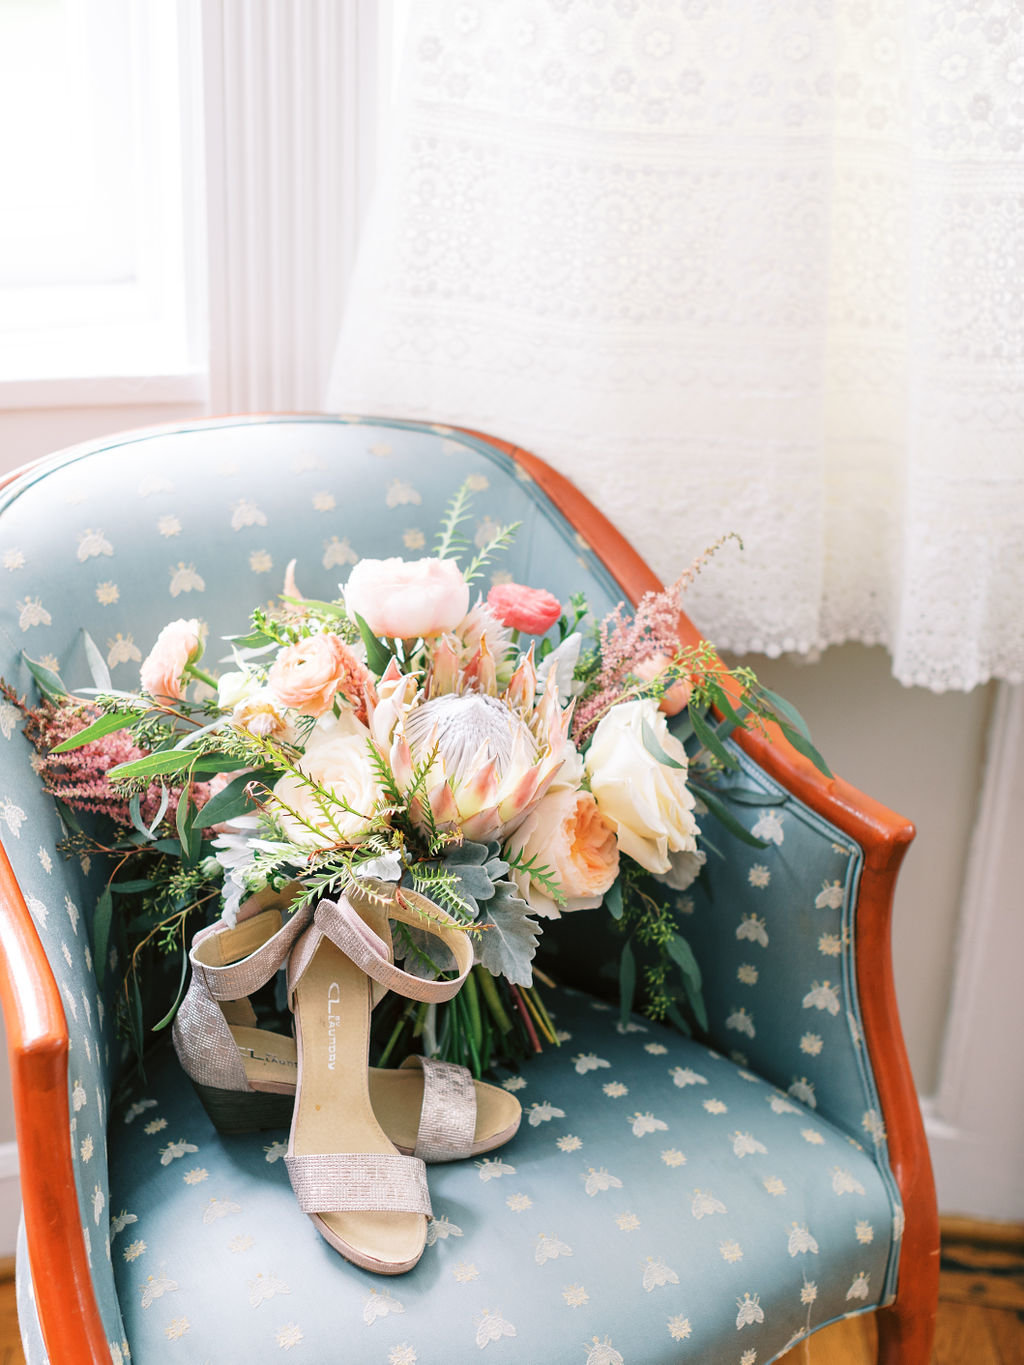 A styled Fete bouquet greenville country club Delaware